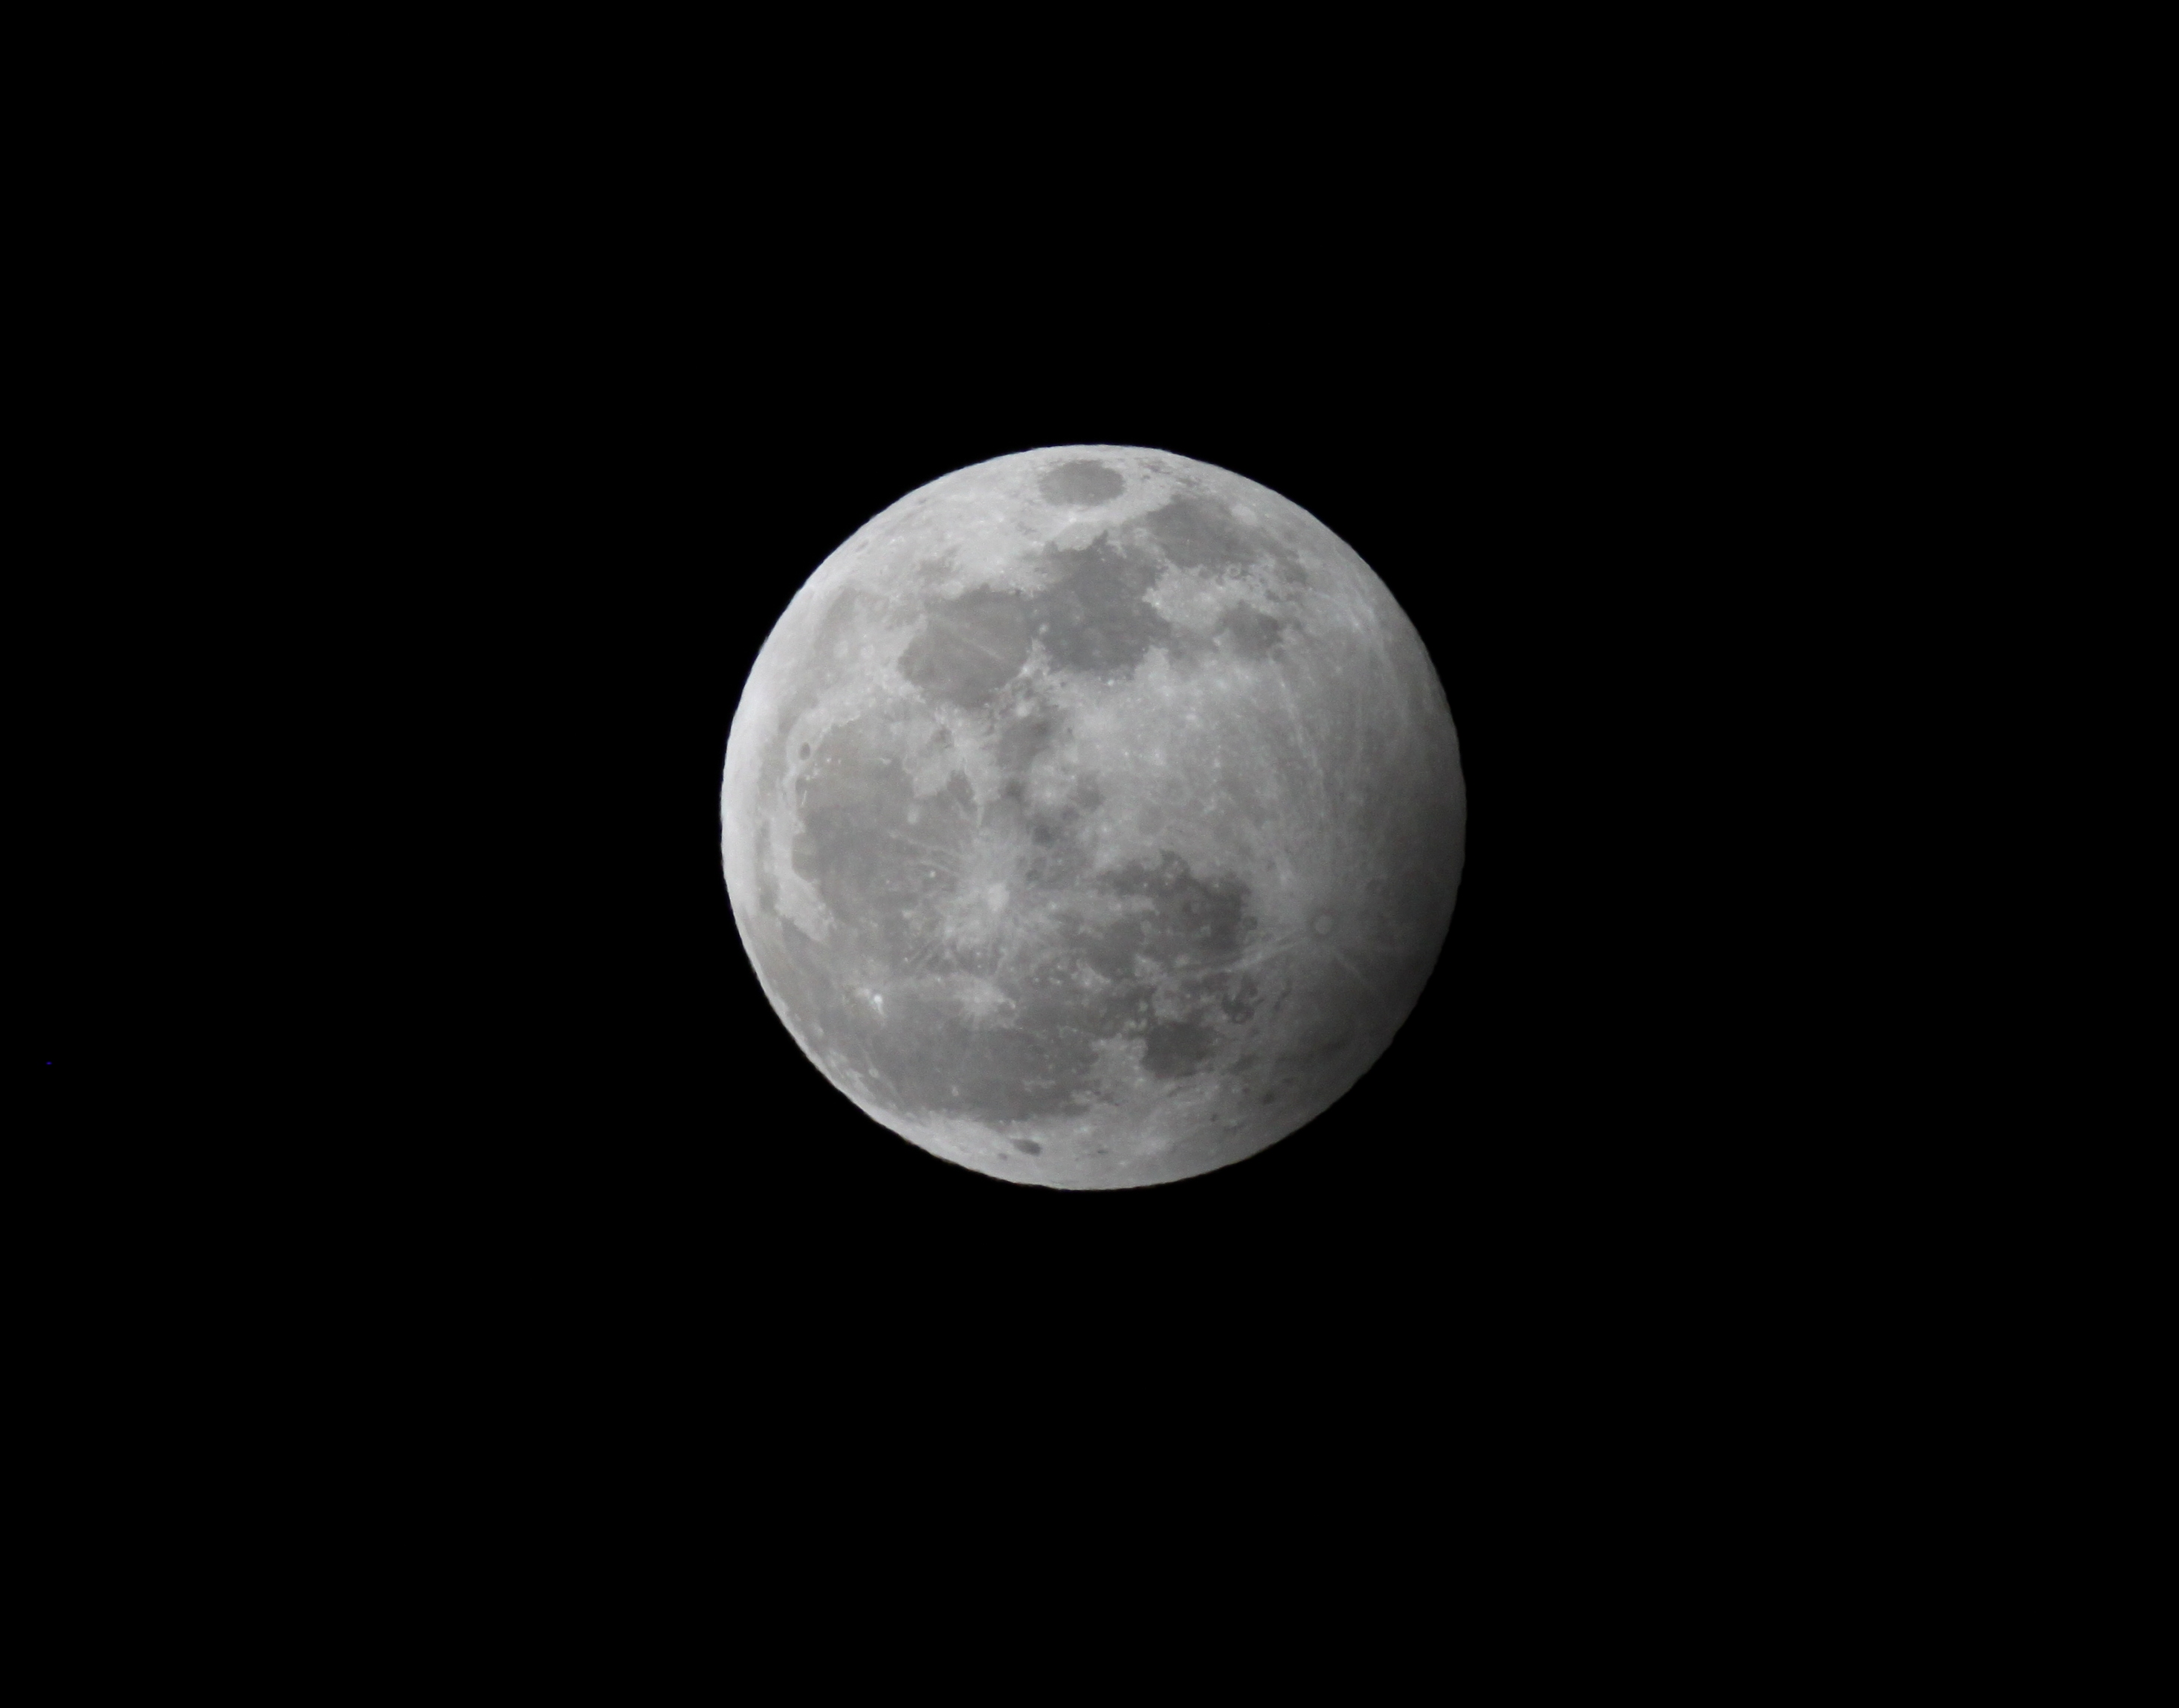 Eclipse-Lune-10-01-2020-maximum.jpg